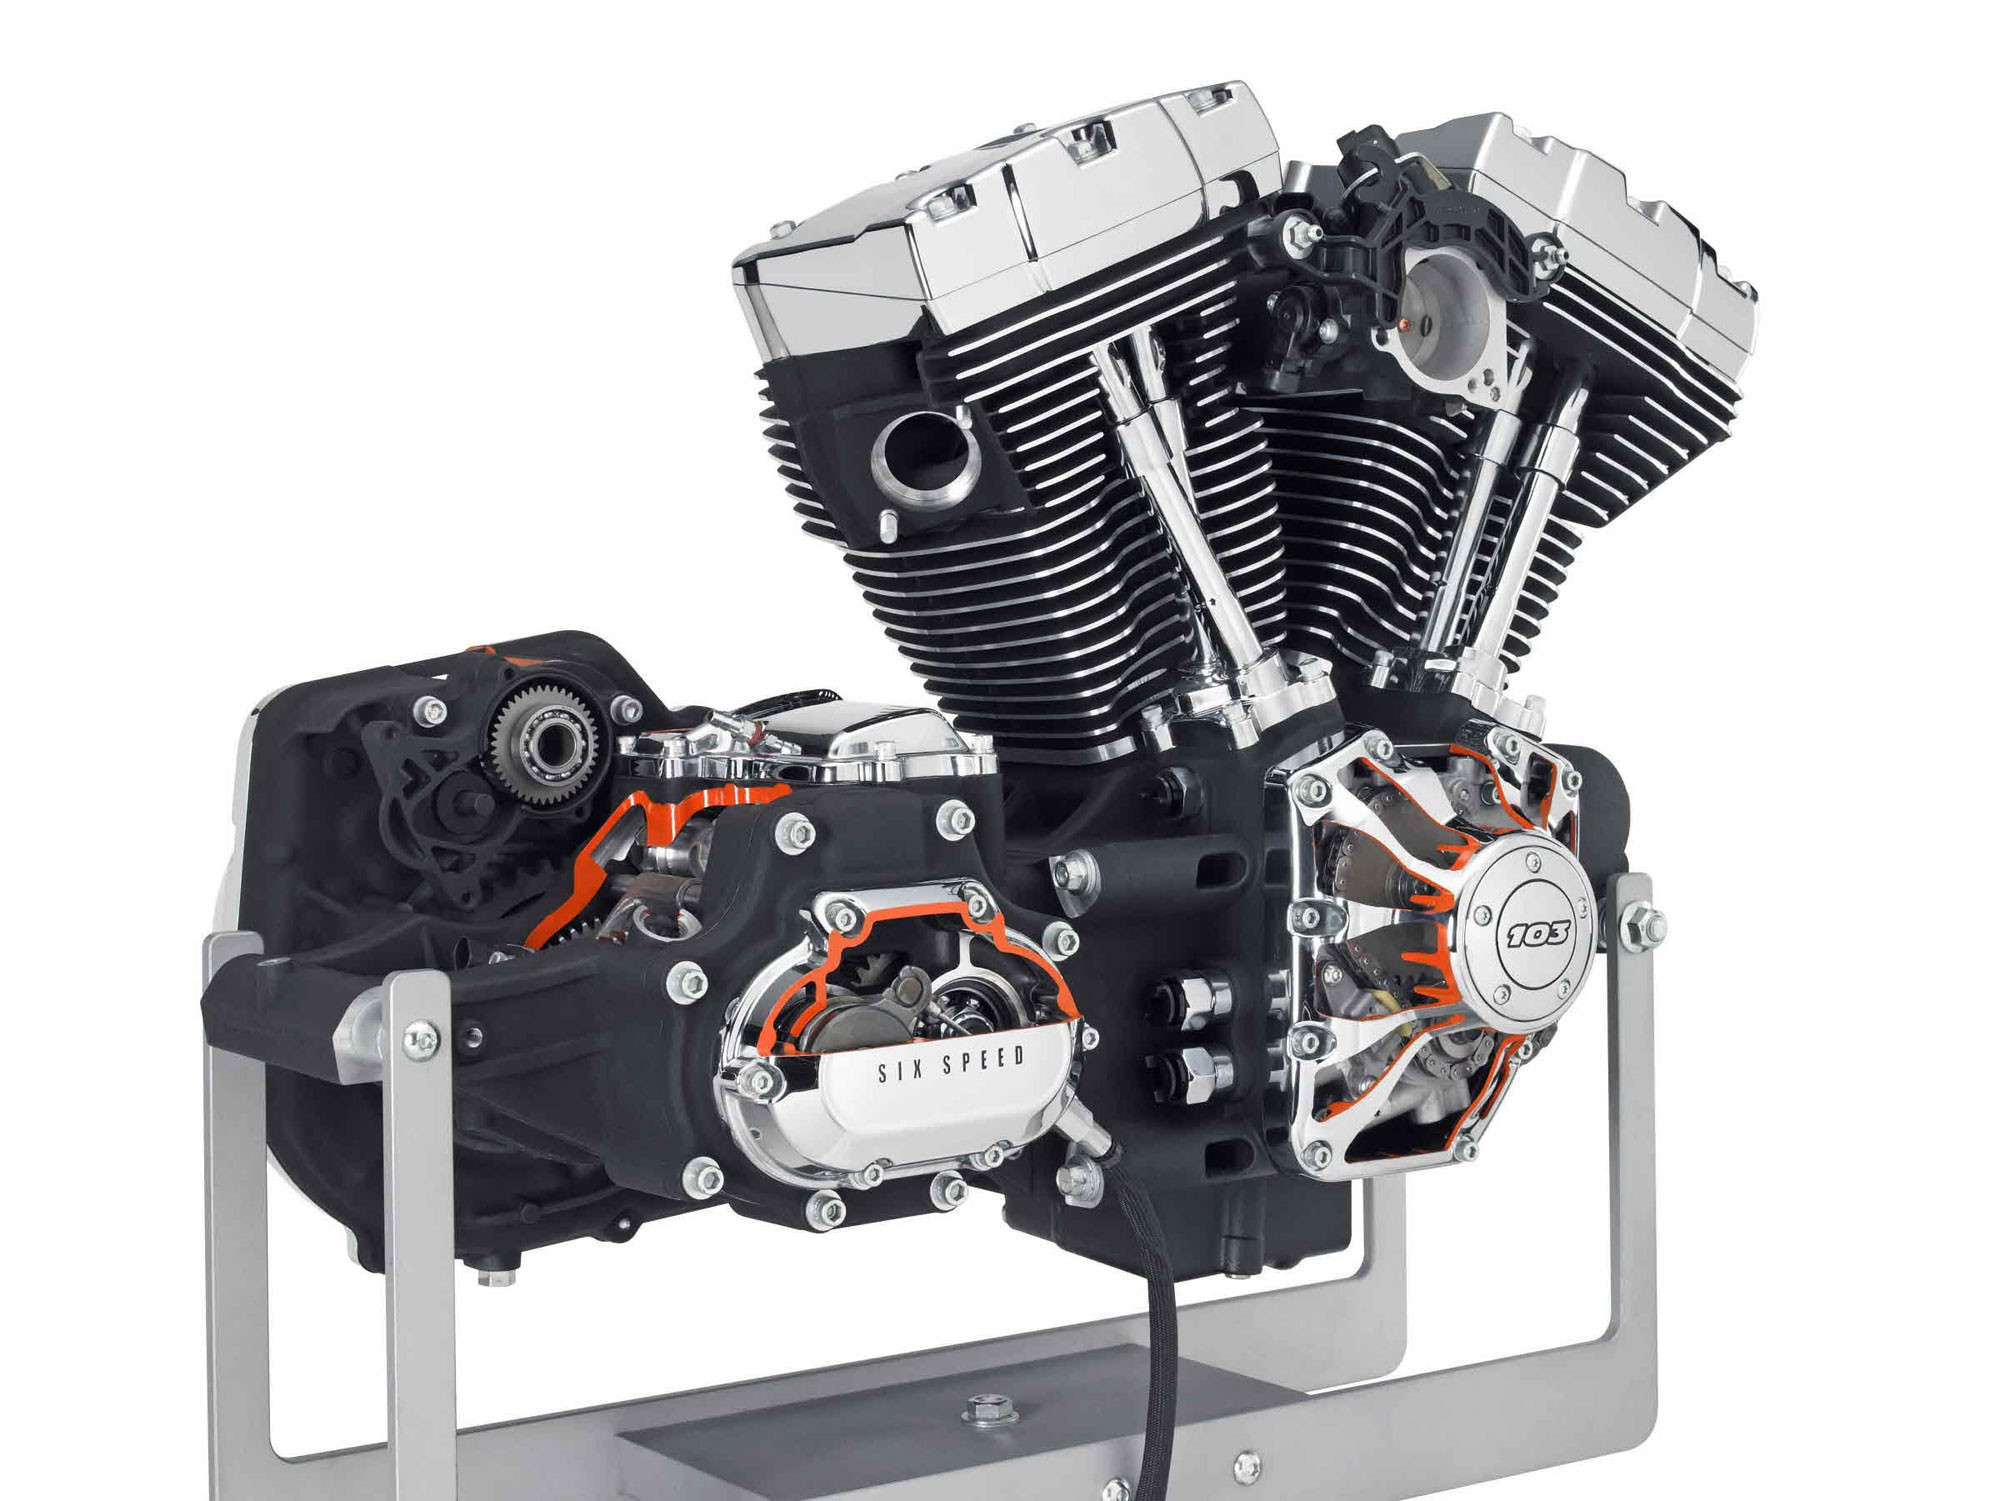 Harley Engine Parts Diagram Harley Evolution Engine Diagram Books Wiring Diagram • Of Harley Engine Parts Diagram